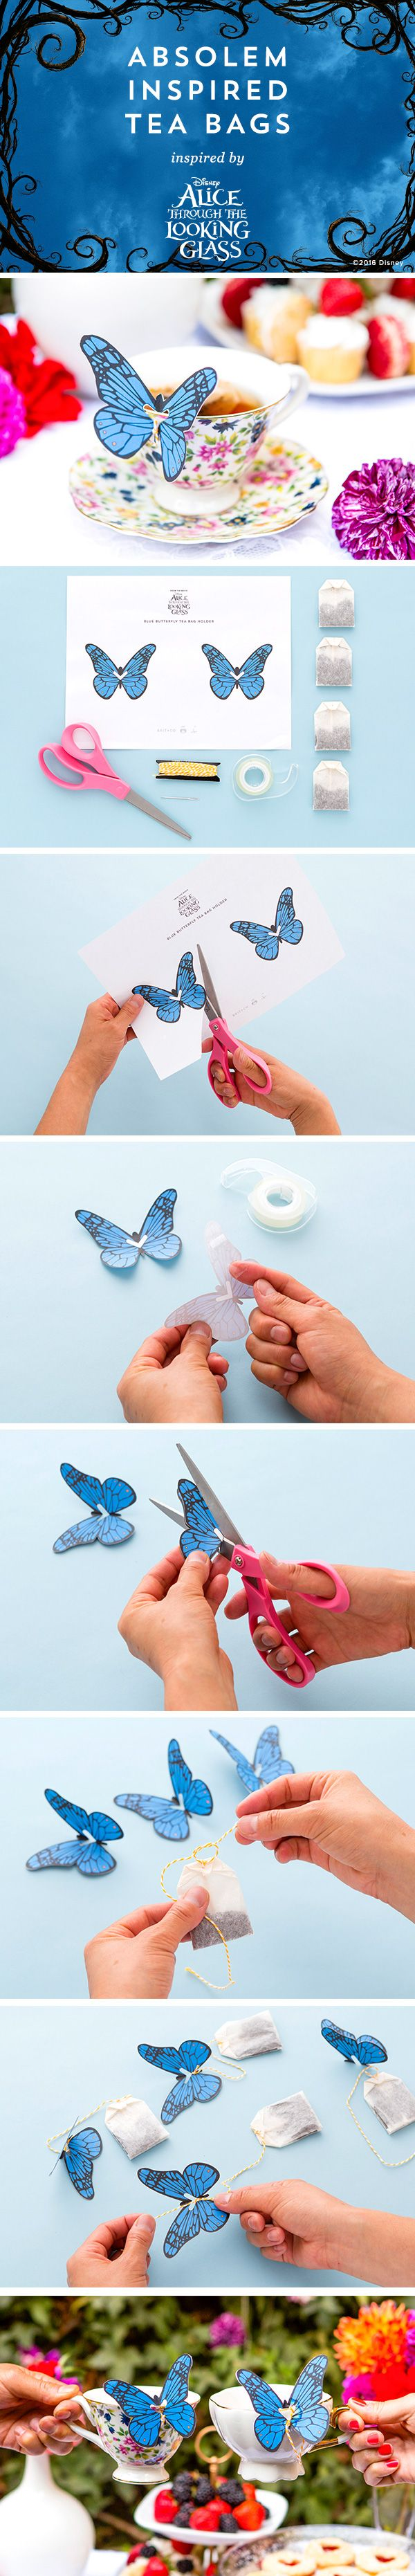 Bookmark this for a quick easy step-by-step DIY for making your own Absolem butterfly tea bags for an Alice Through the Looking Glass-themed tea party or brunch! #partner